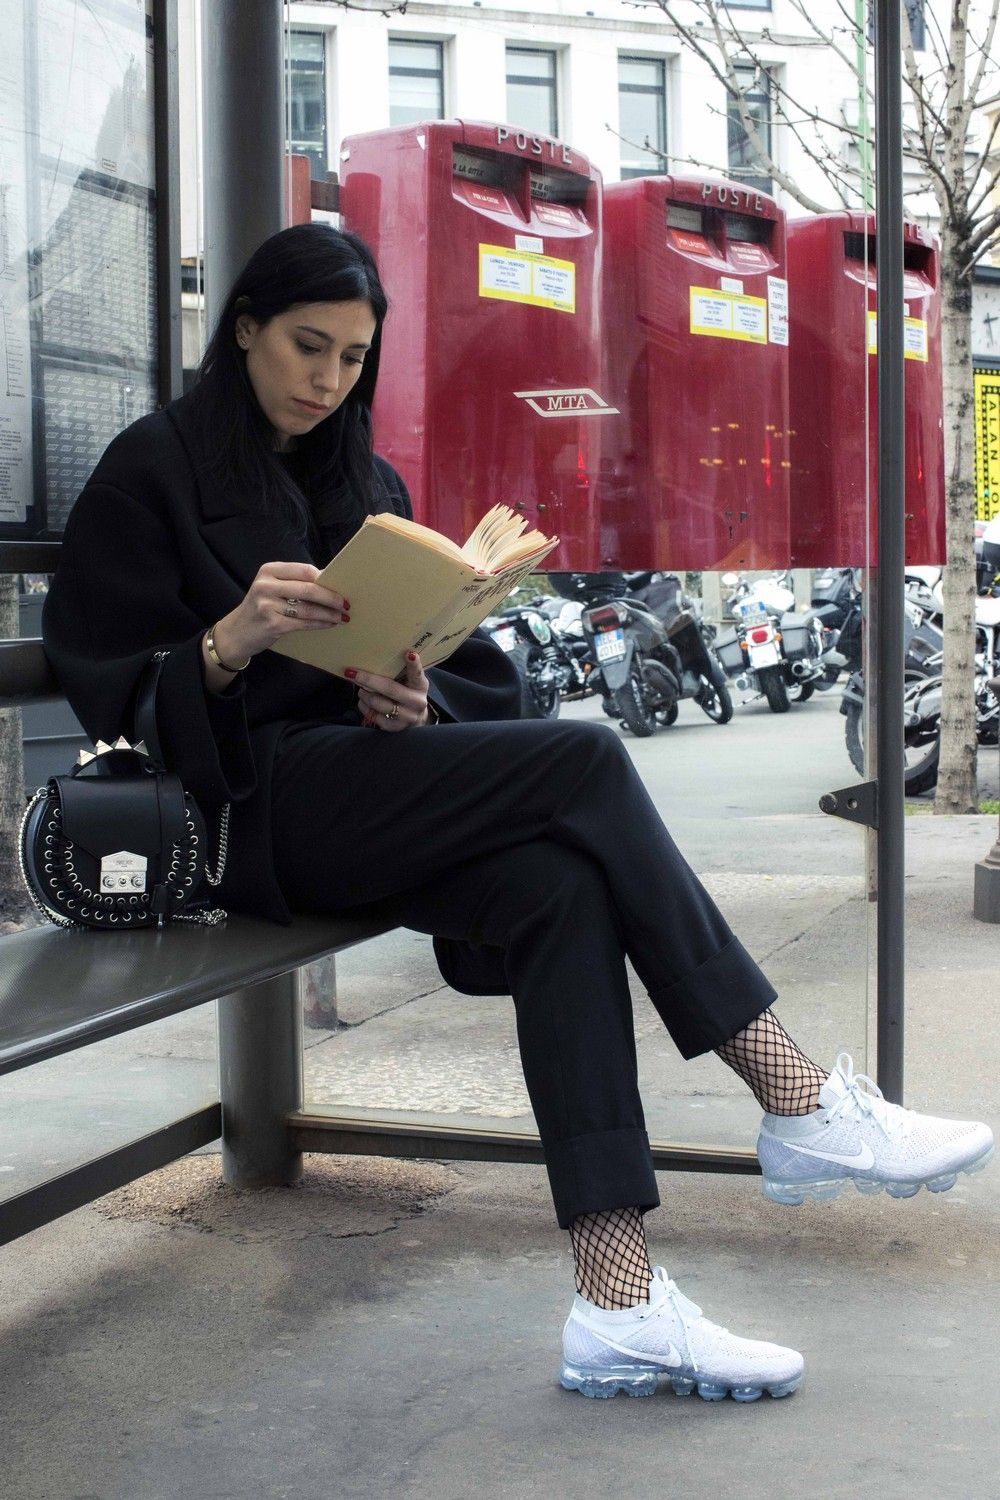 Francesca wearing the Nike Air Vapormax Platinum